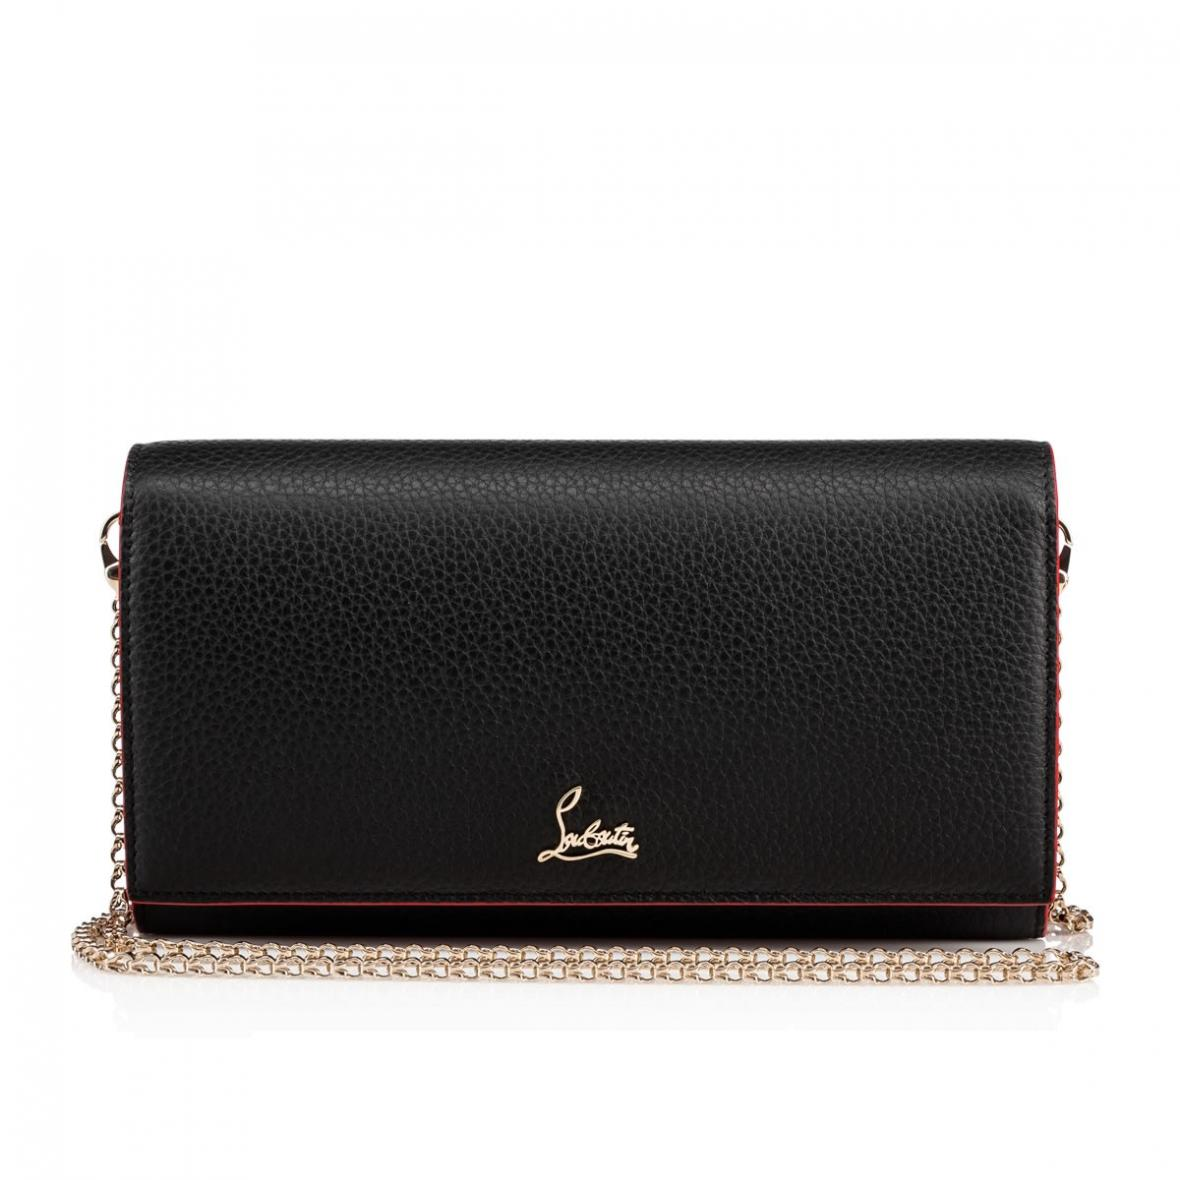 Christian Louboutin Small Leather Goods & Accessories – Womens Boudoir  Chain Wallet Black